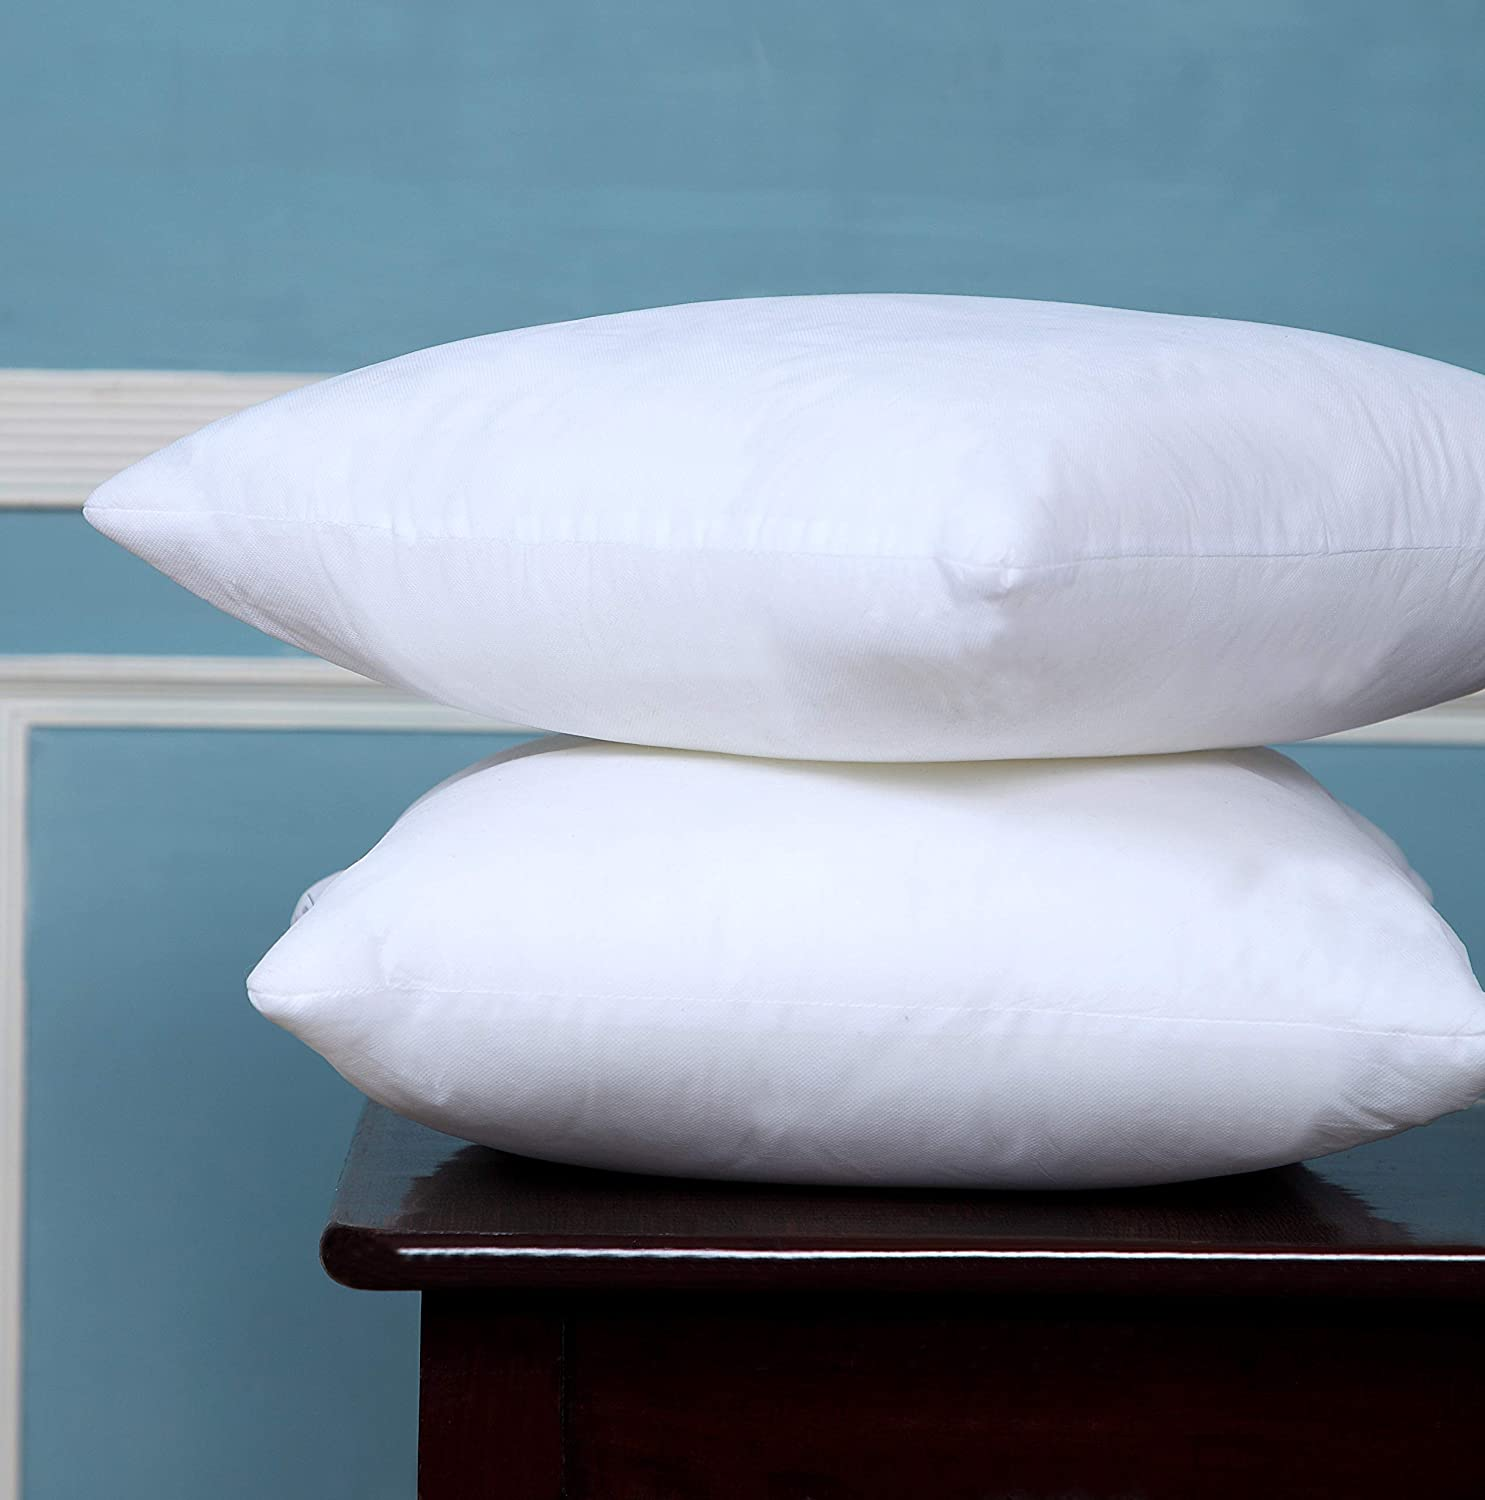 Bed bath & Home Throw Pillows Insert - 16 x 16 Inches Bed and Couch Pillows - Indoor Decorative Pillows (Pack of 2, White)